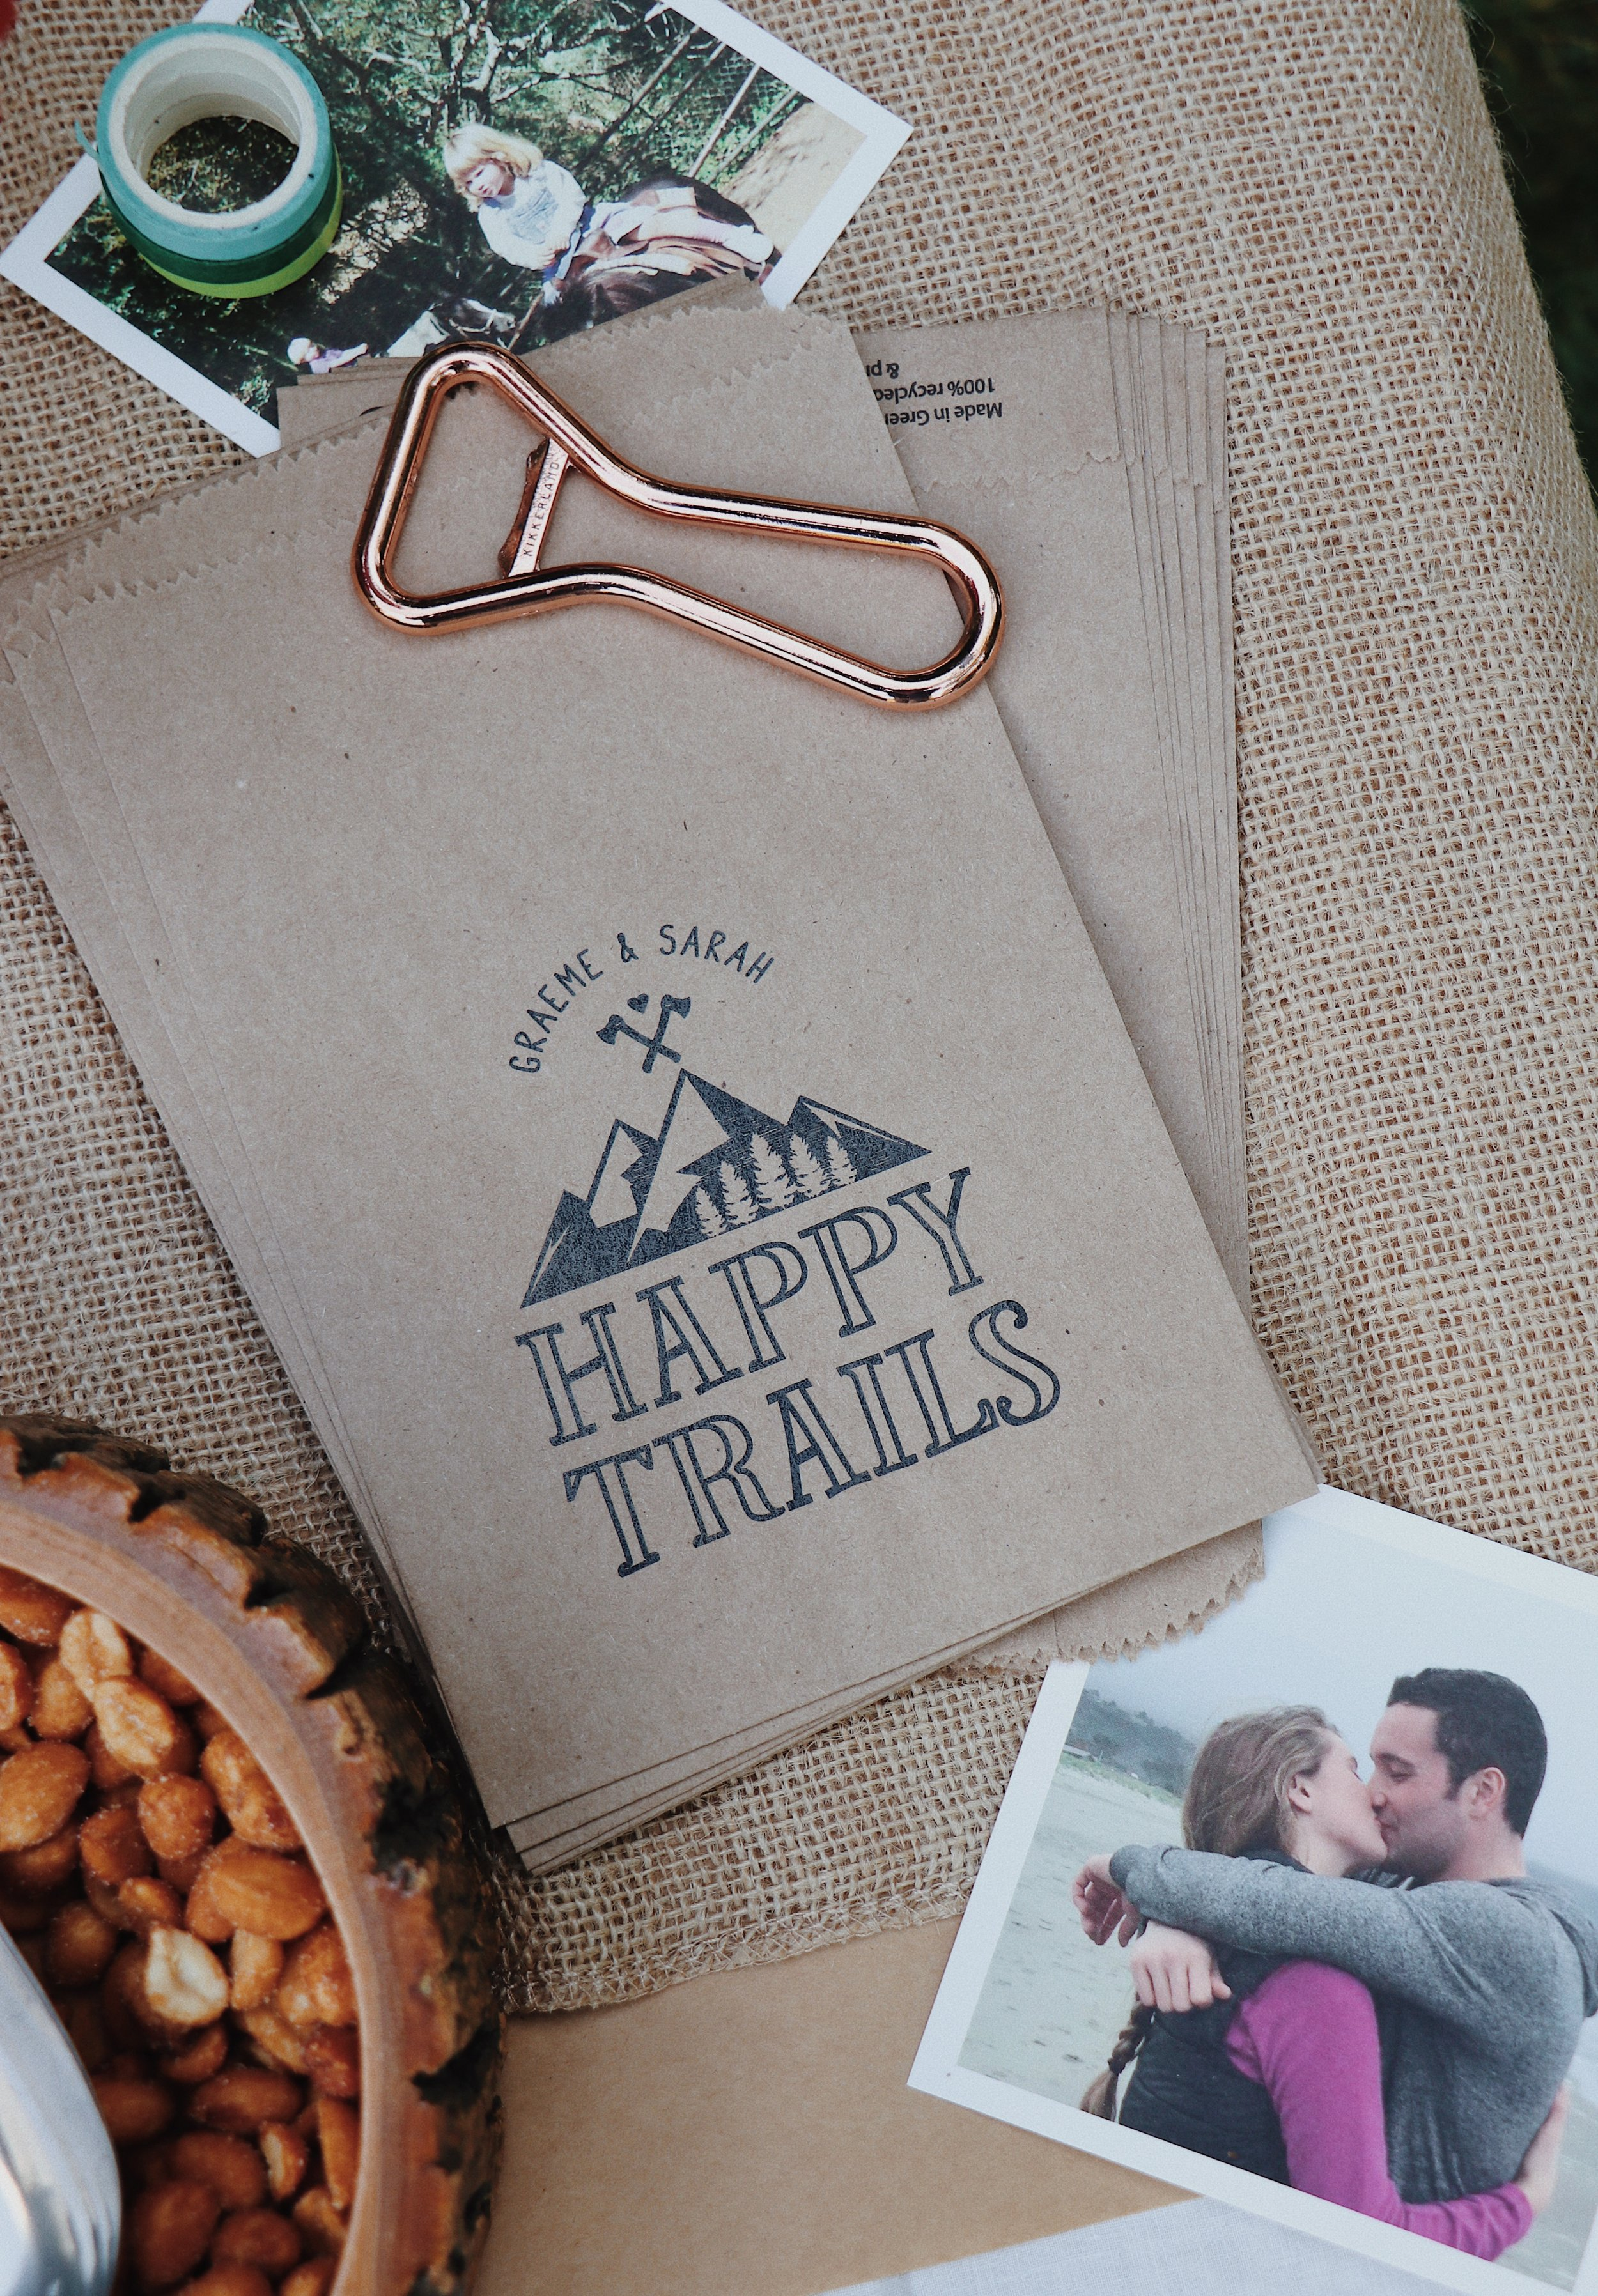 Personalized Happy Trails bag from Etsy